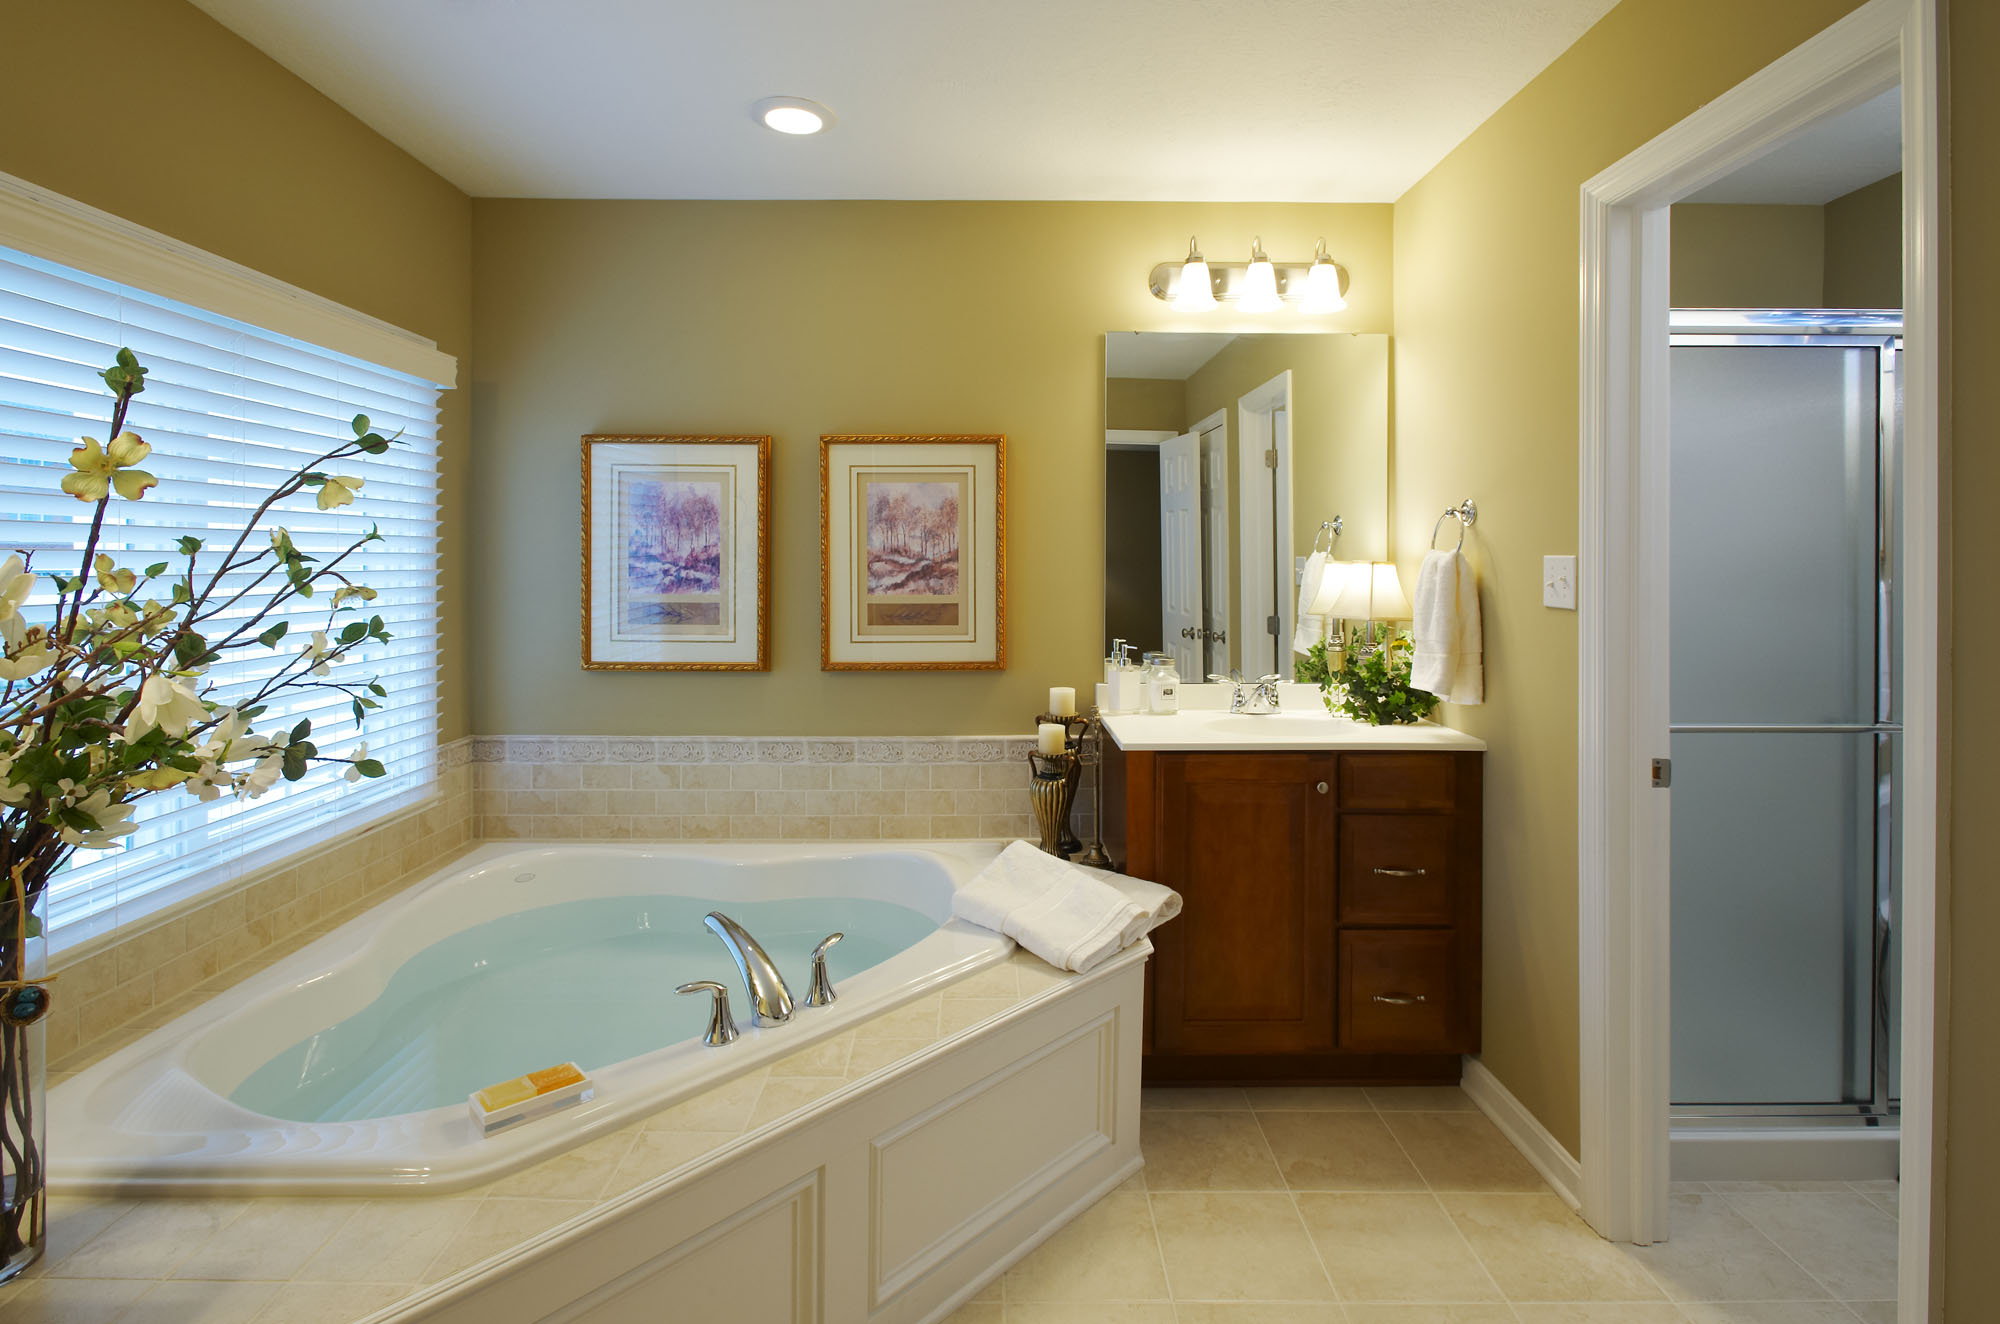 Model home bathroom pictures 17 varities of looking your for Bathroom models photos